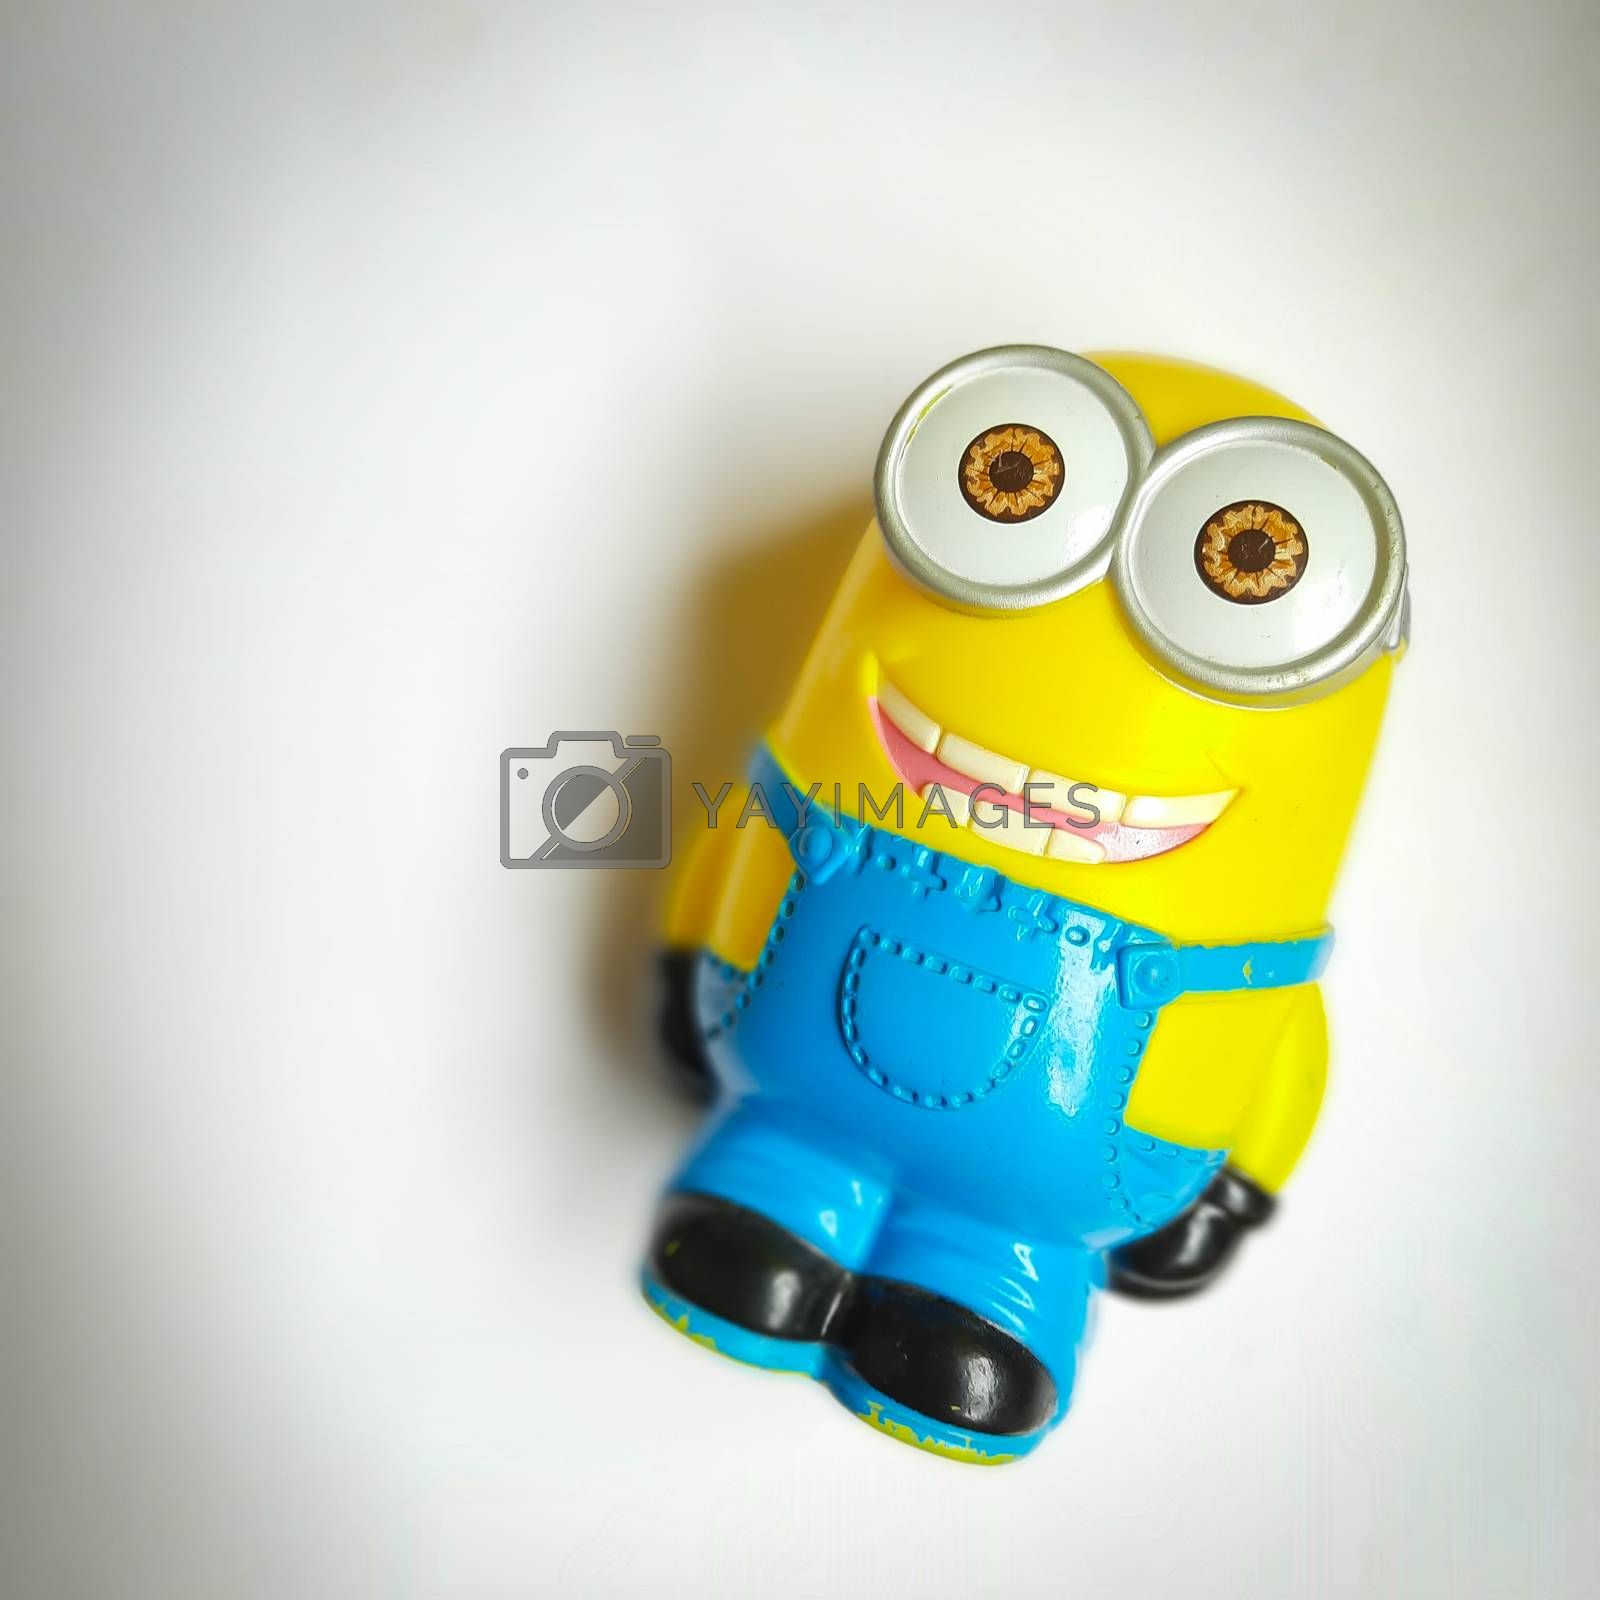 Chennai, India - July 2 2020: Minion toy shape piggy bank placed in white background